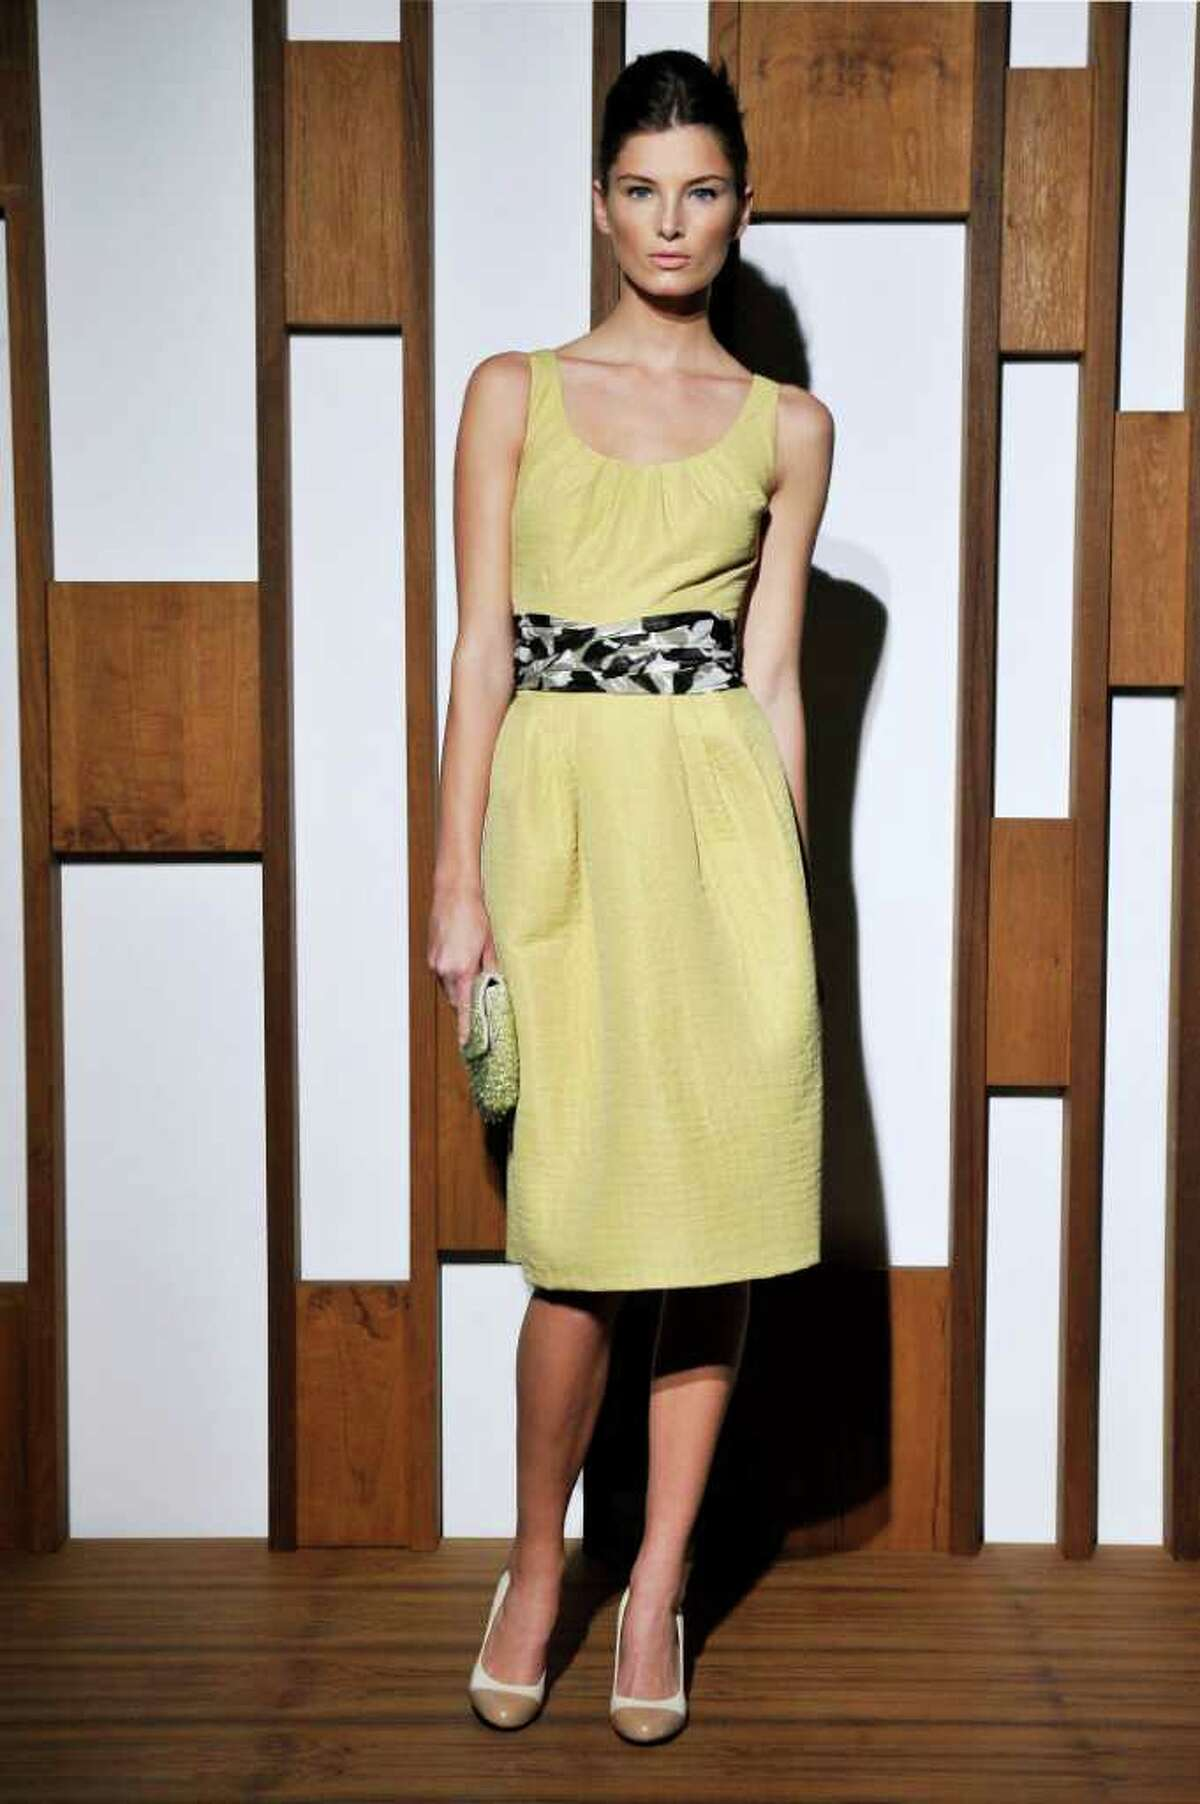 Banana Republic offers a pale yellow sheath dress for spring.